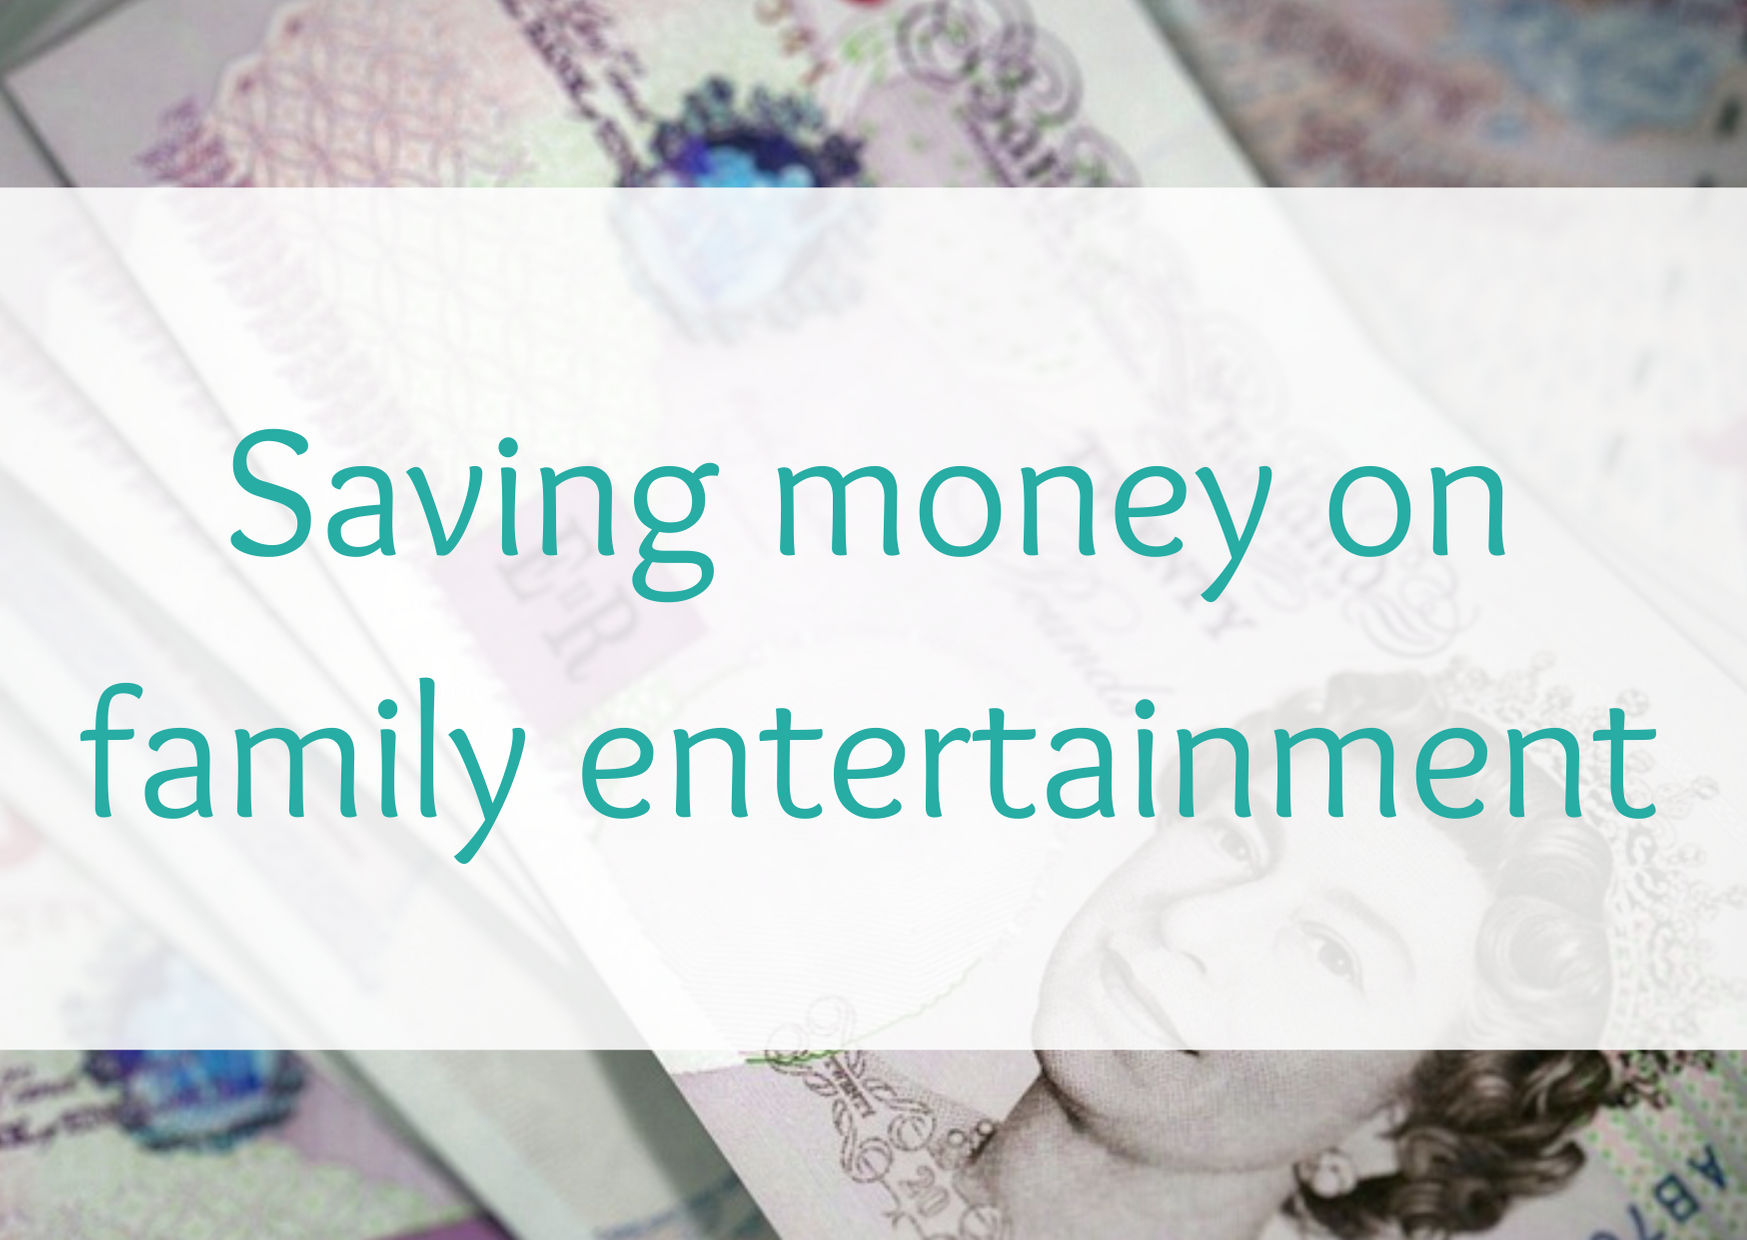 Saving money on family entertainment